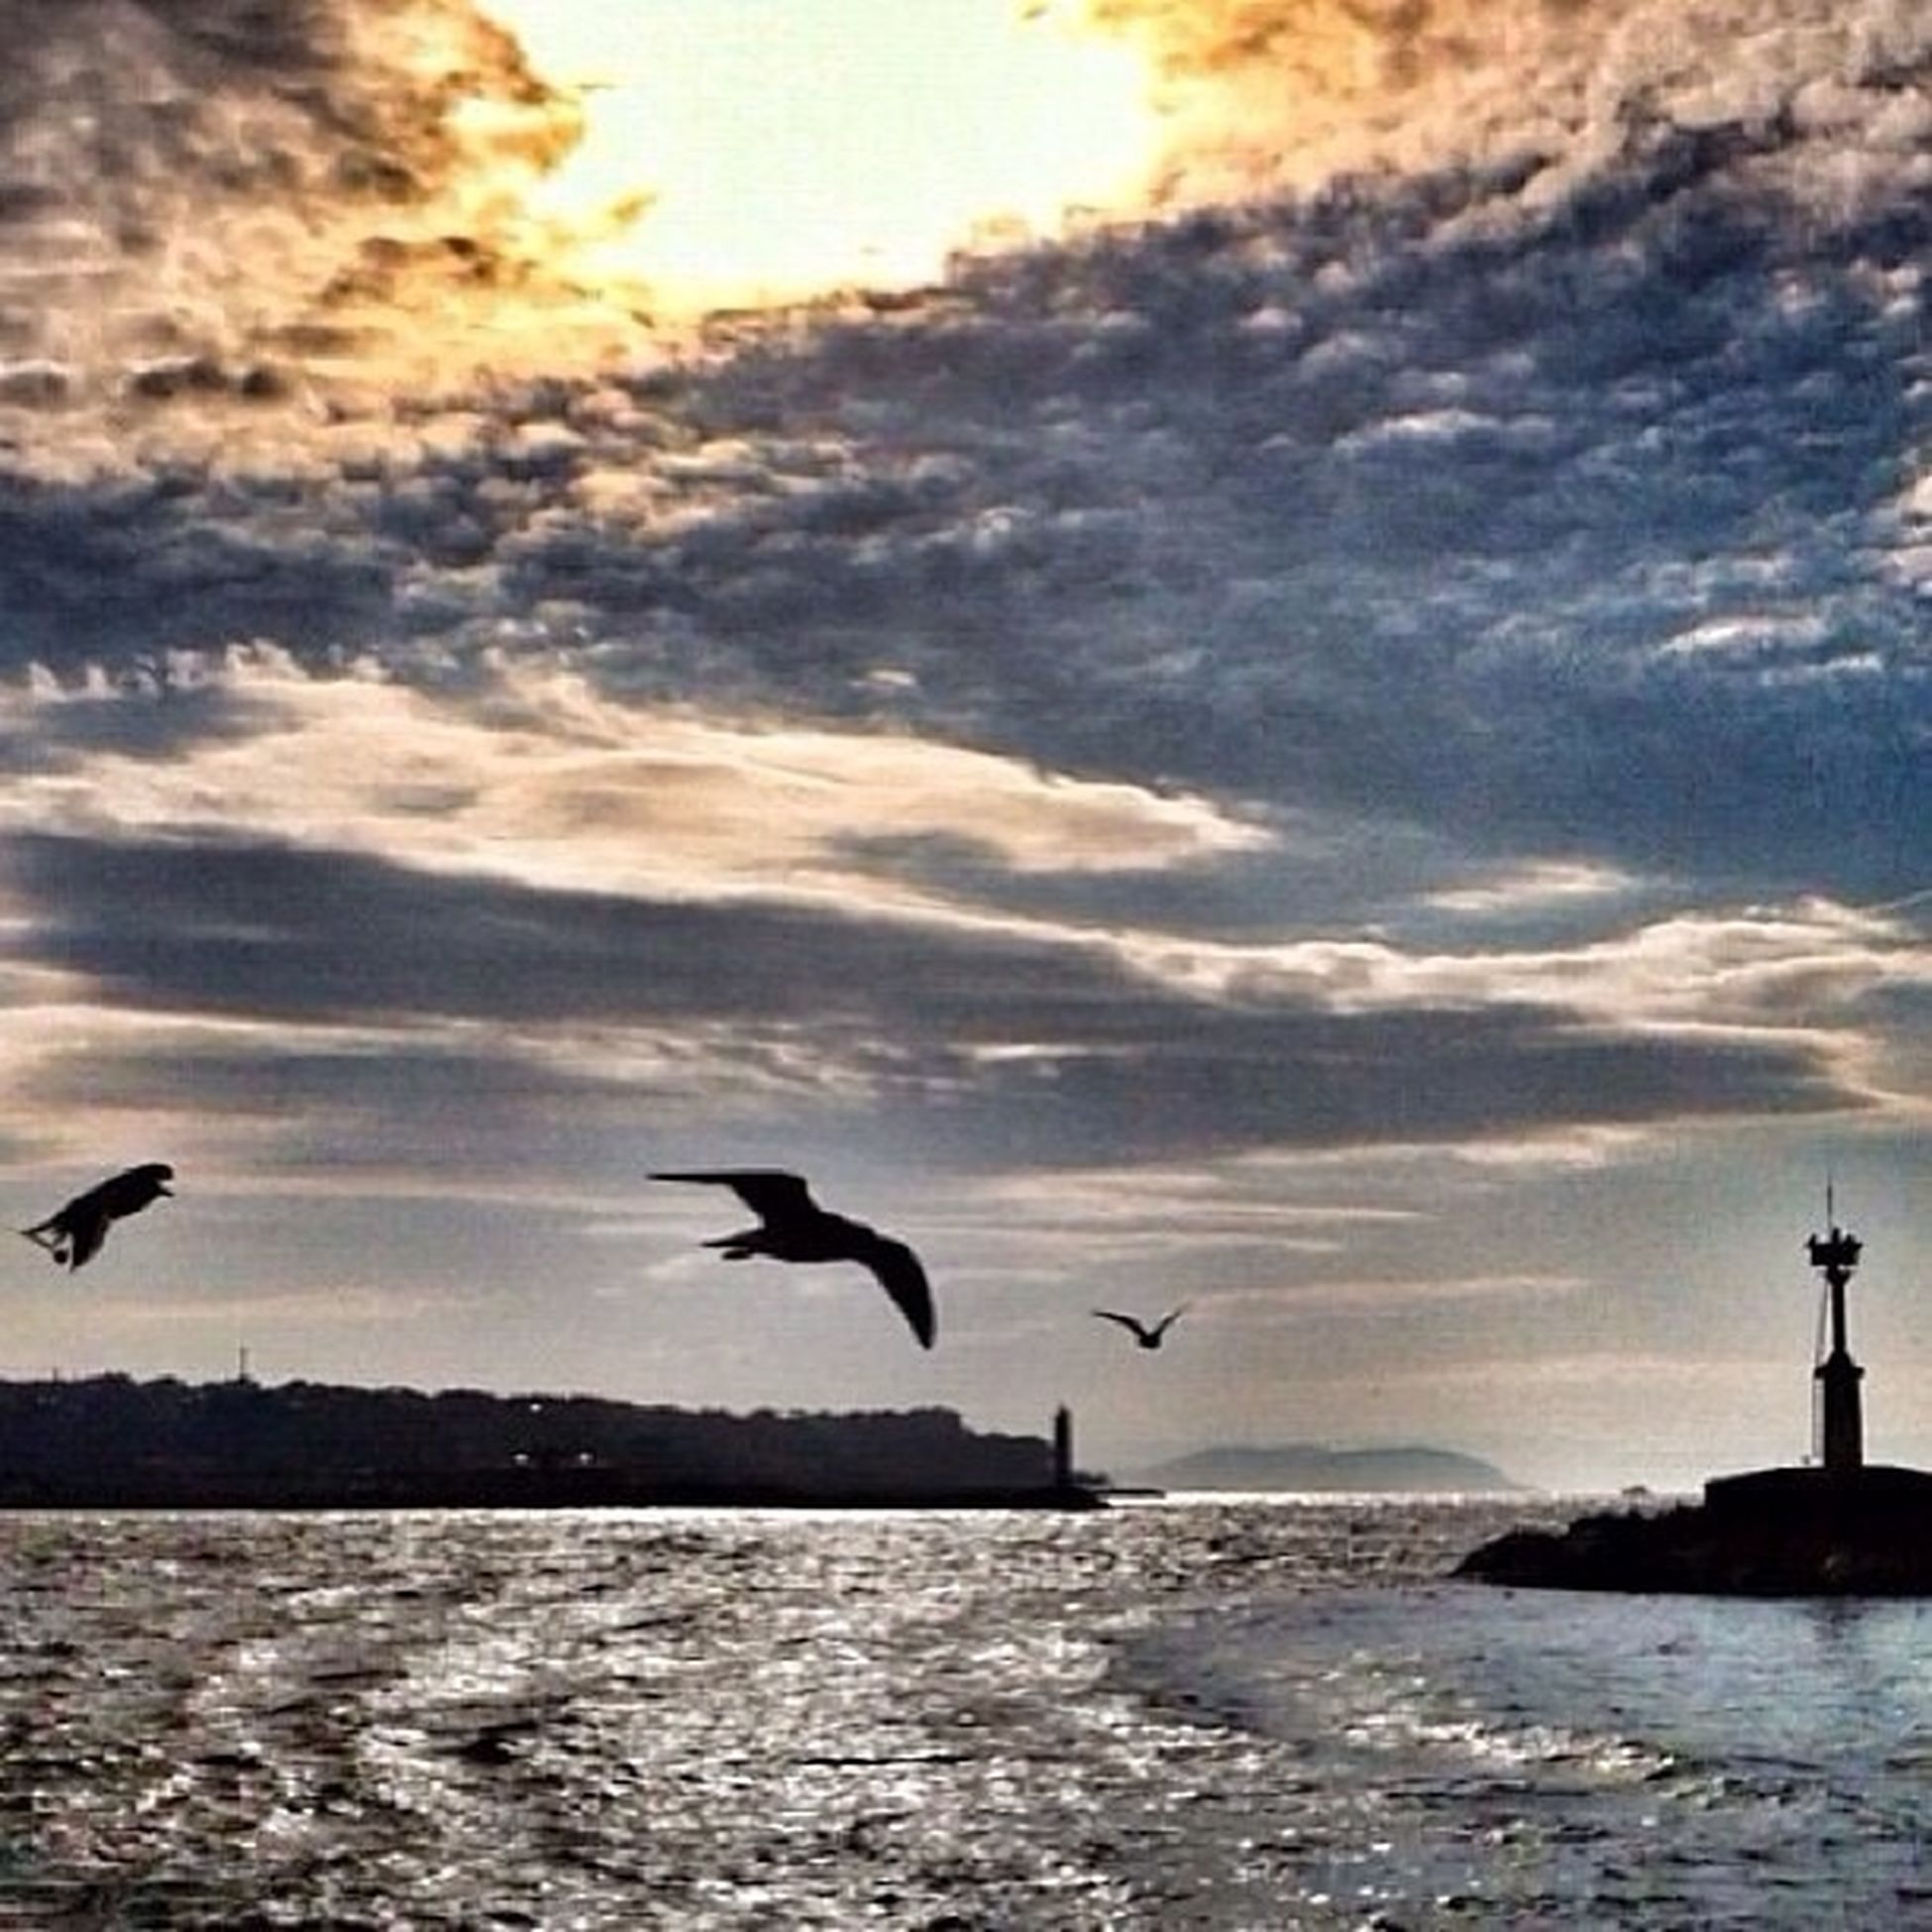 bird, animal themes, animals in the wild, wildlife, water, flying, sky, sea, seagull, spread wings, sunset, cloud - sky, silhouette, waterfront, horizon over water, nature, beauty in nature, cloud, scenics, tranquility